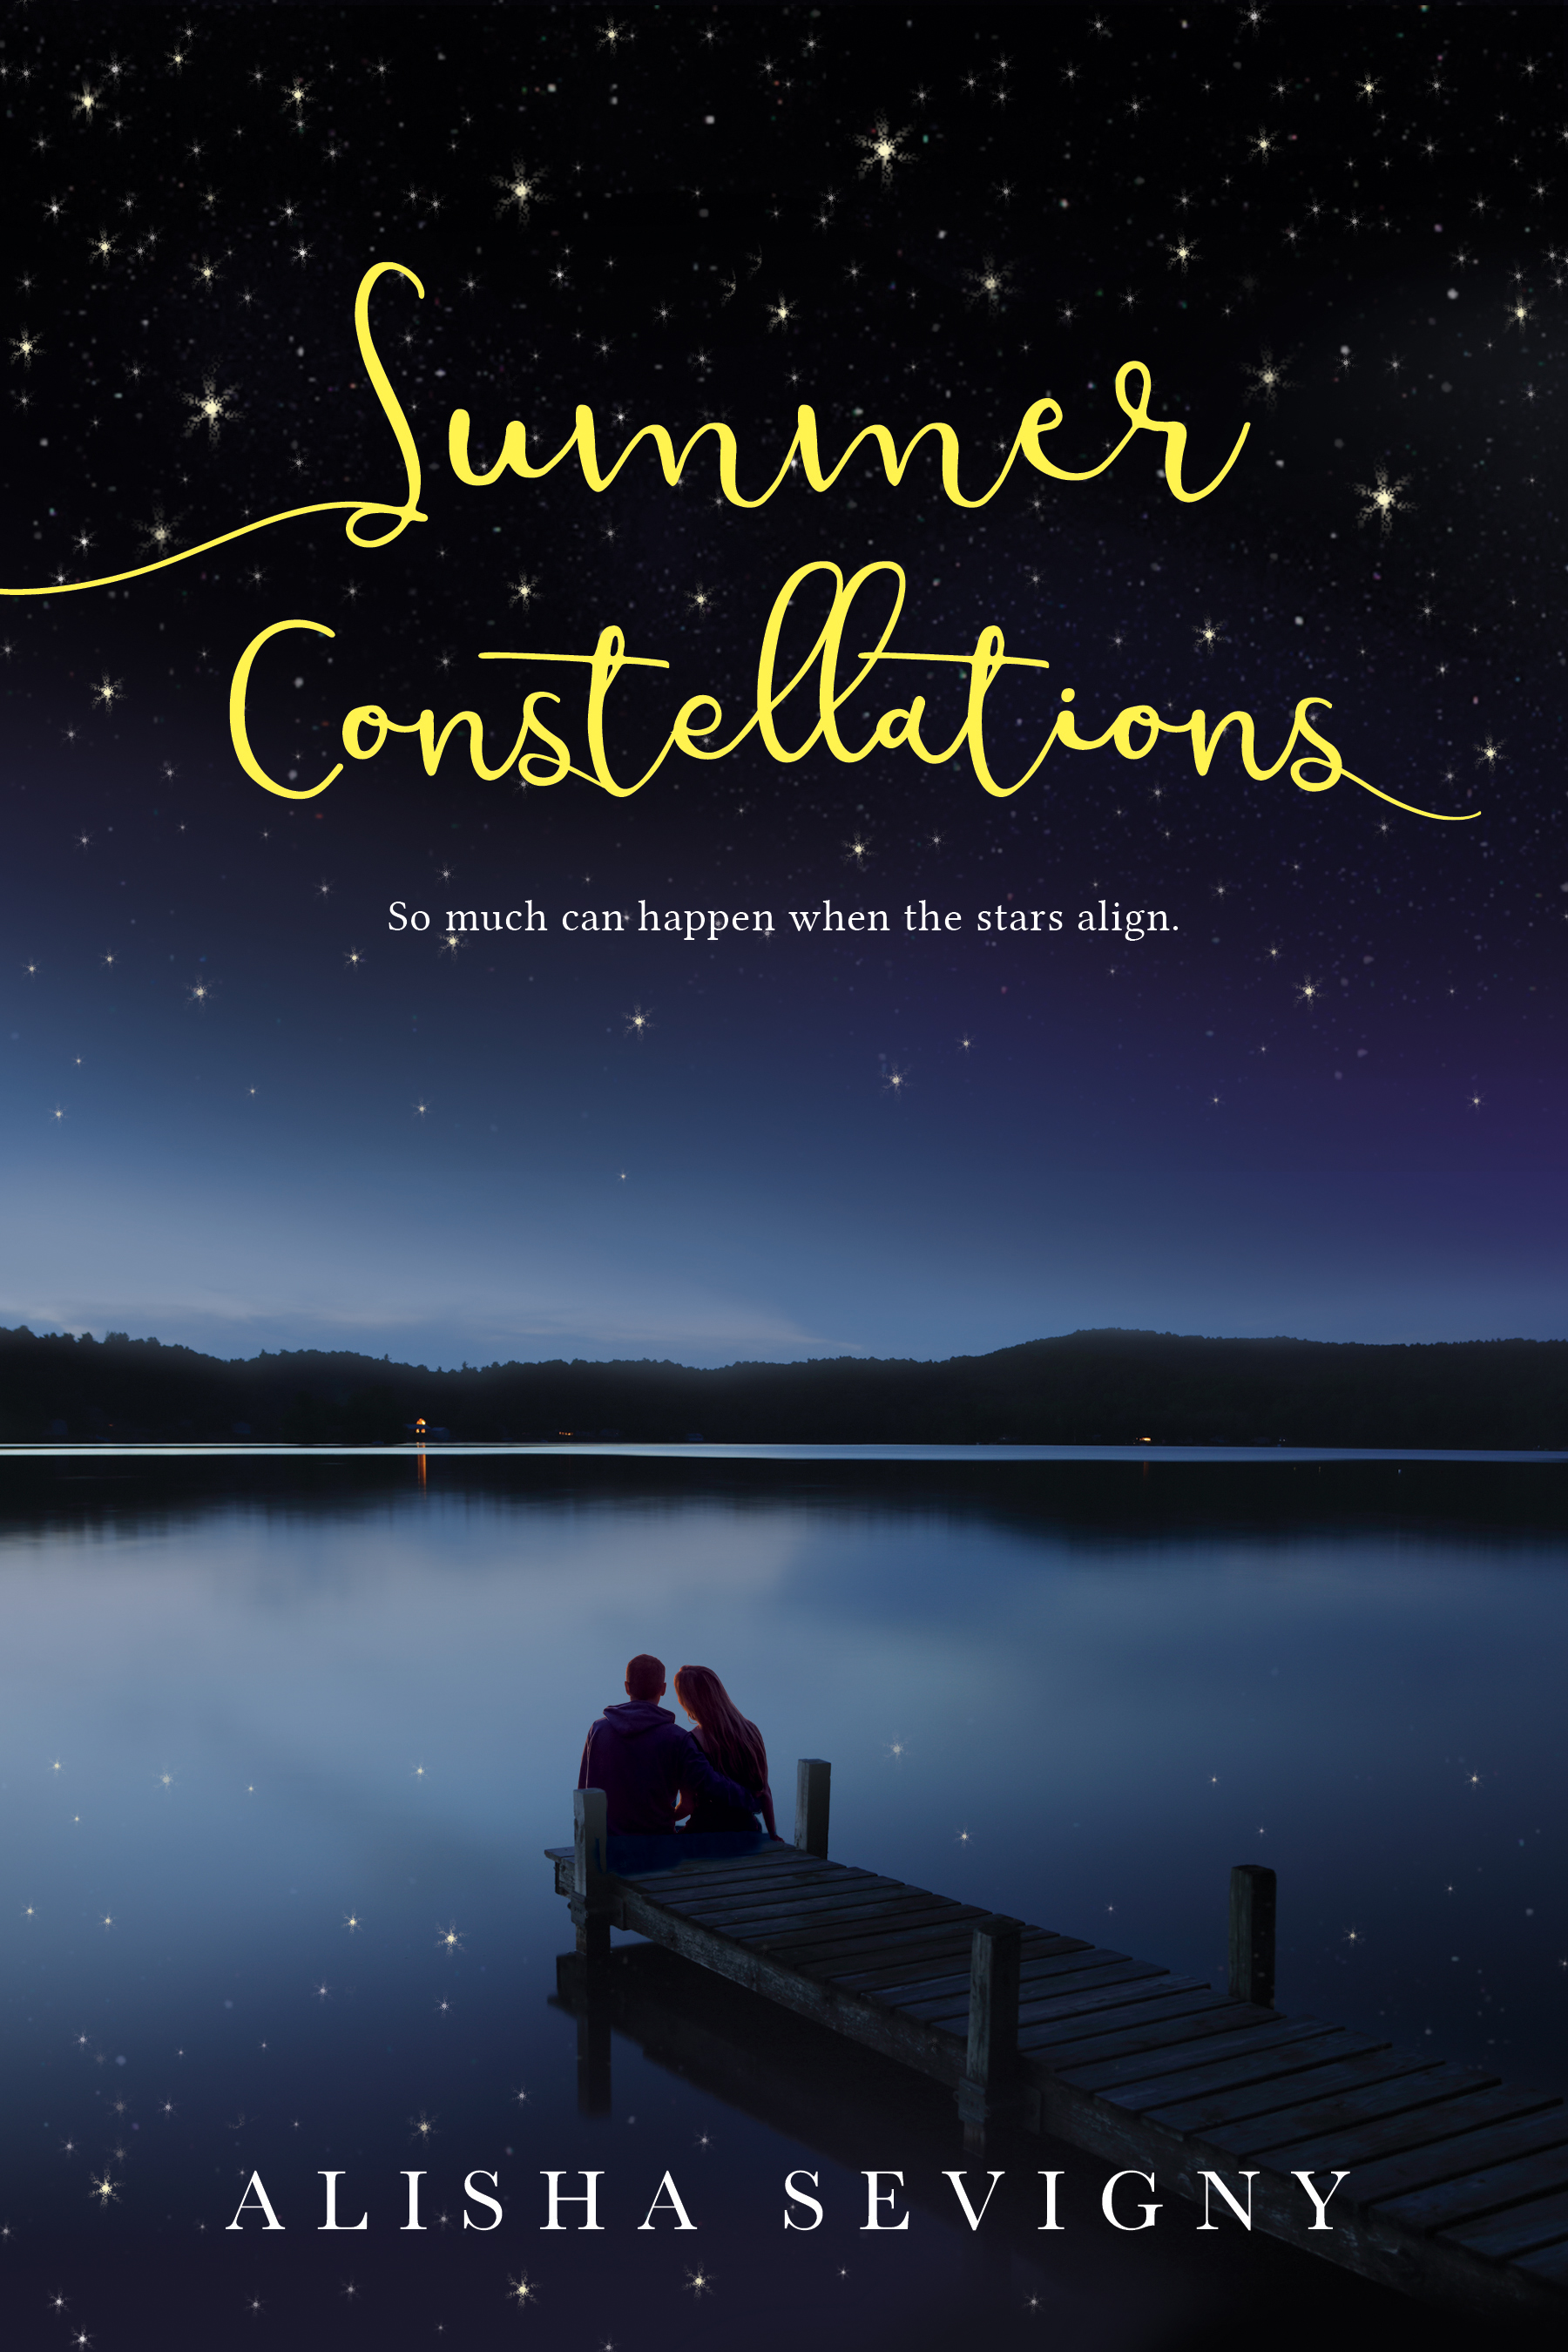 Summer Constellations Book Cover